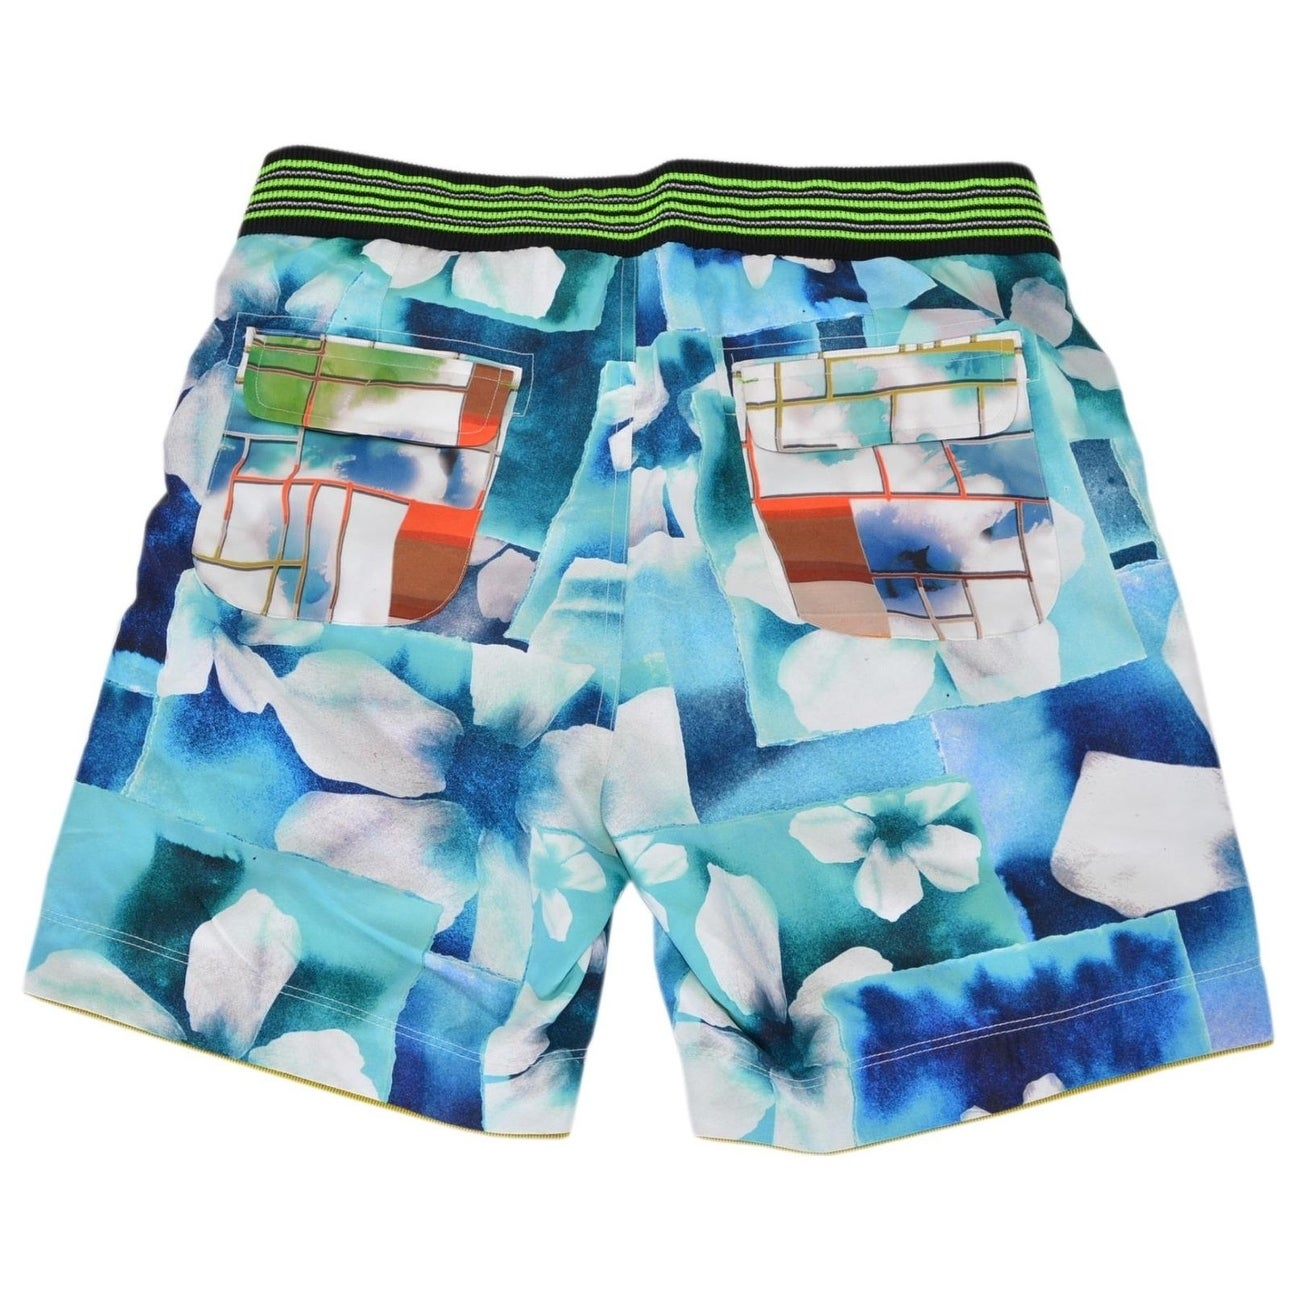 253ce1fc8a Shop Robert Graham Classic Fit FLORAL PARADISE Board Shorts Swim Trunks -  Free Shipping Today - Overstock - 25457557